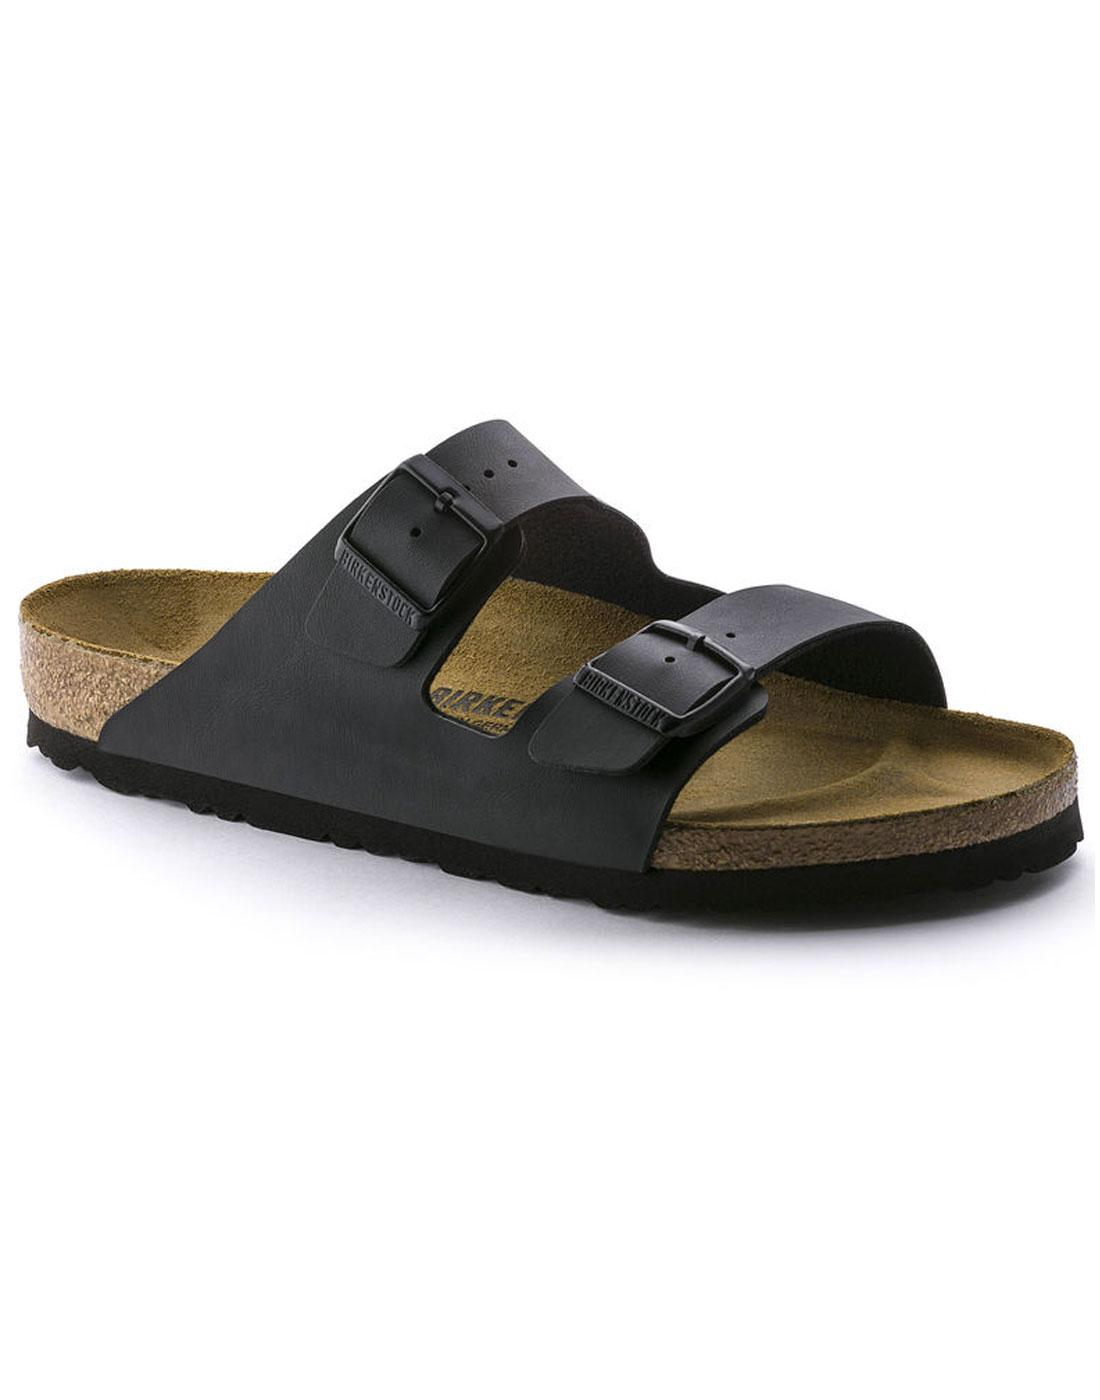 Arizona BIRKENSTOCK Mens Retro 2 Strap Sandals (B)